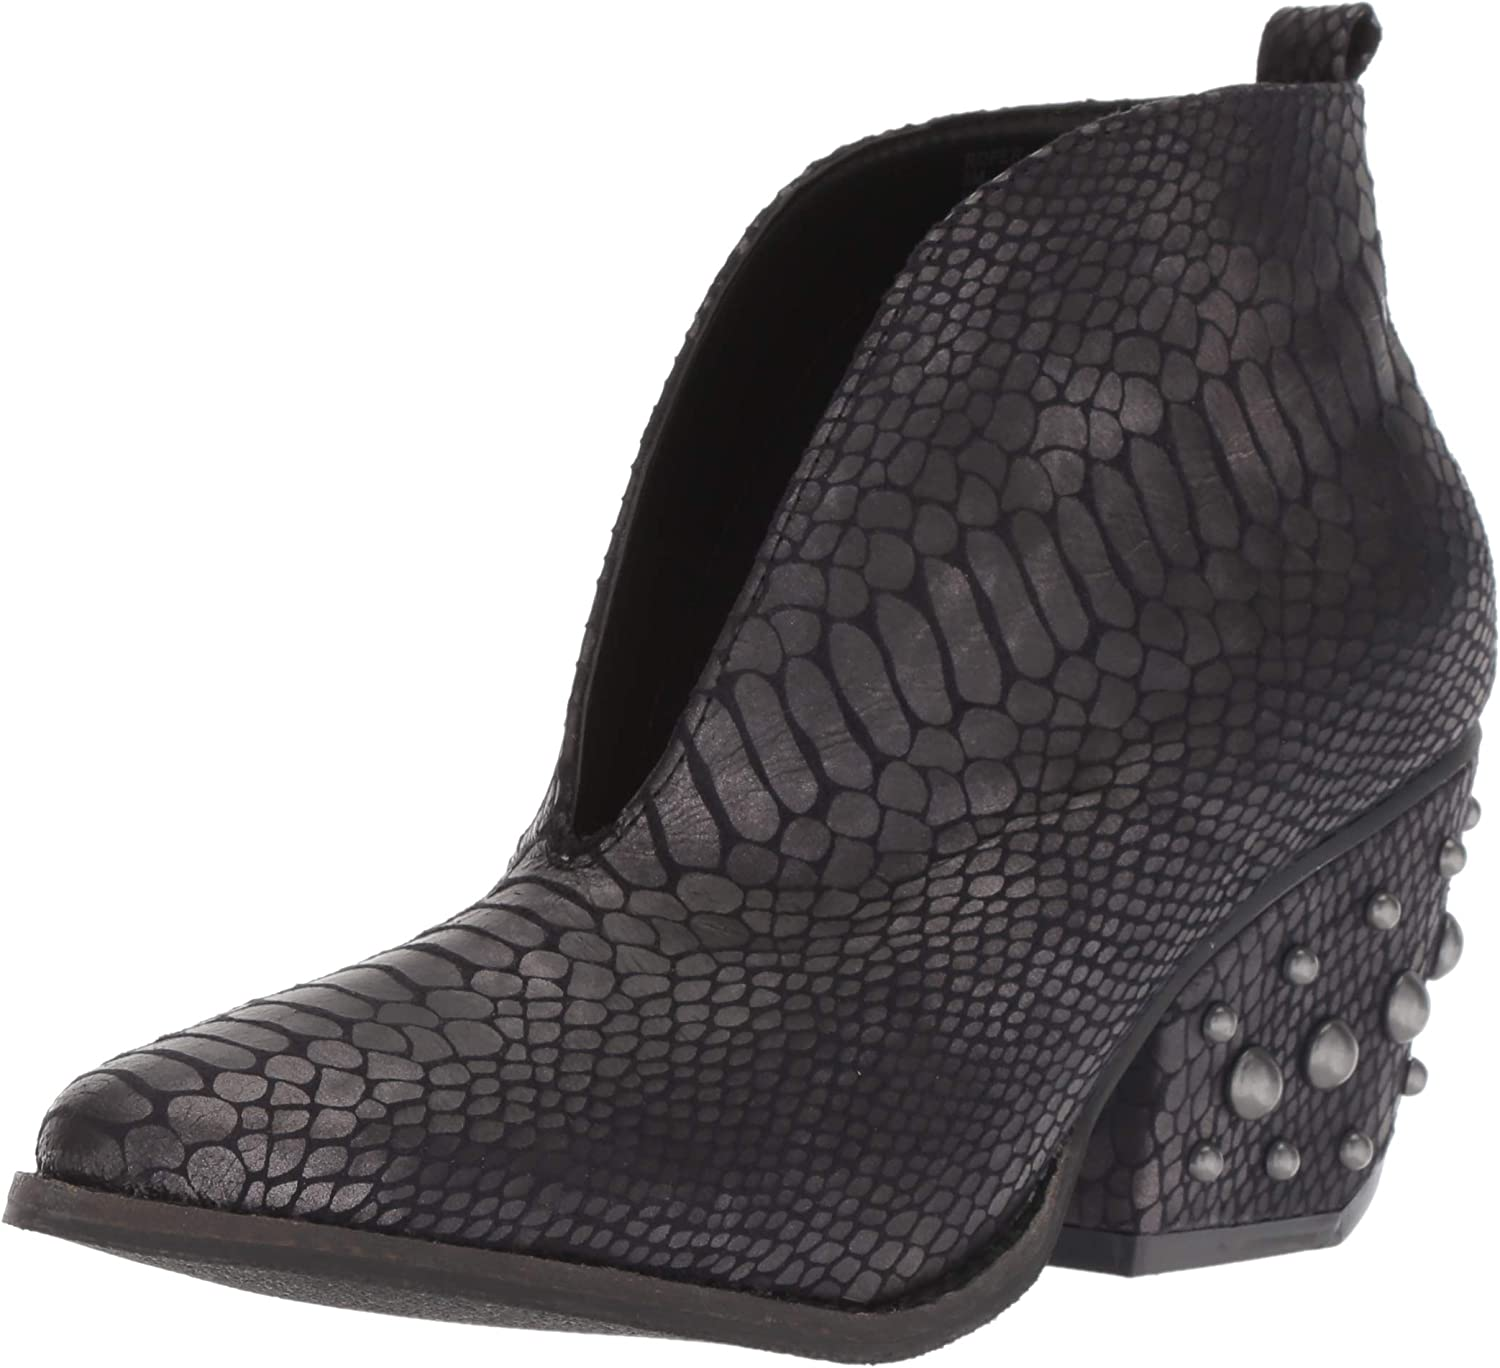 Coconuts By Matisse Womens Roper Ankle Boot